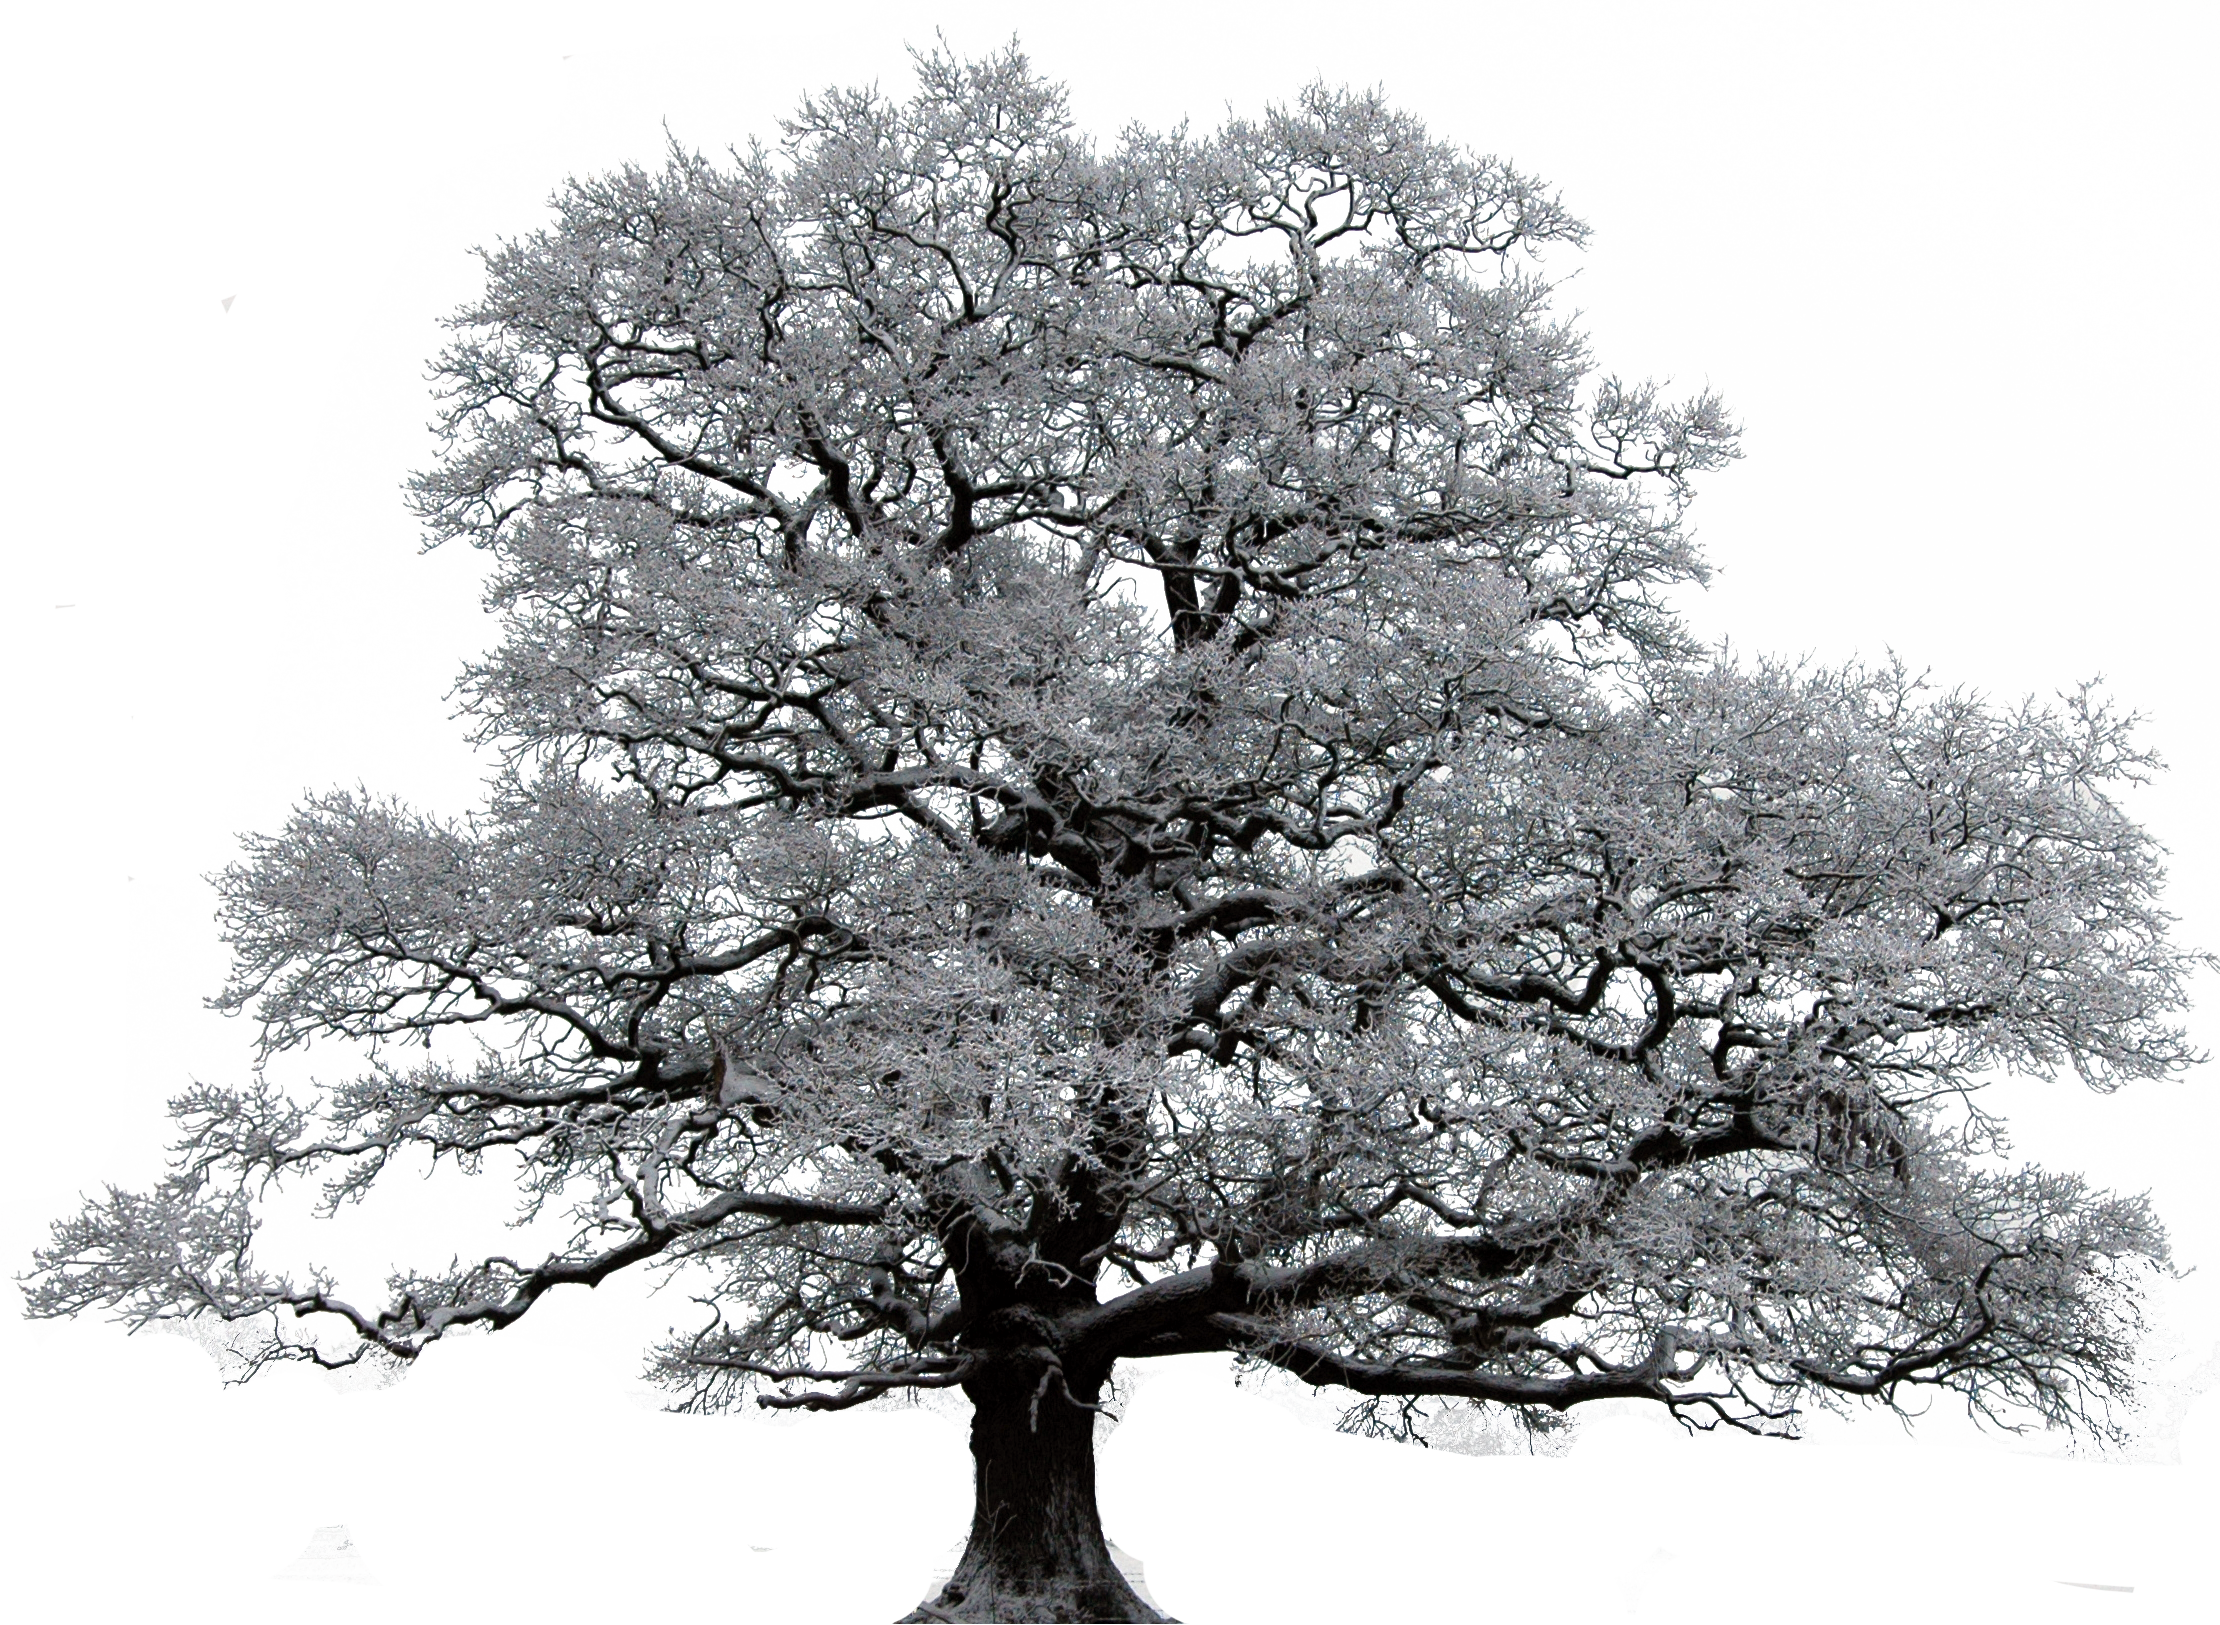 Transparent oak tree clipart - Winter Trees - Tree In Winter Transparent Png